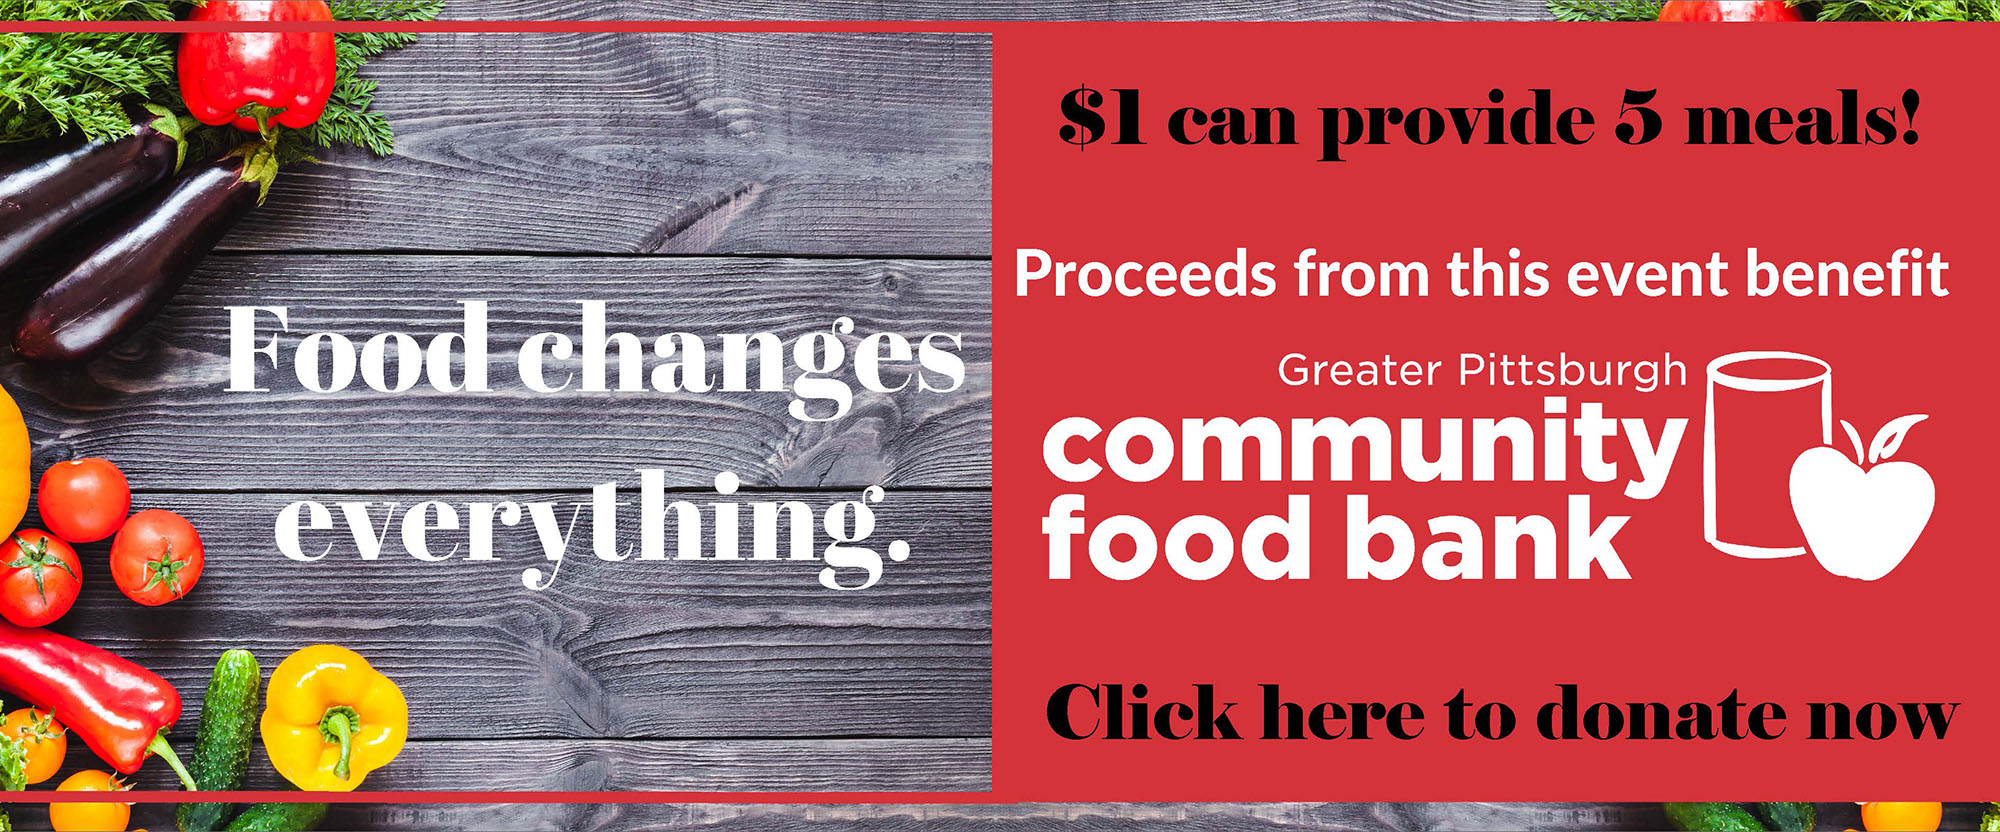 donate to the greater Pittsburgh community foodbank